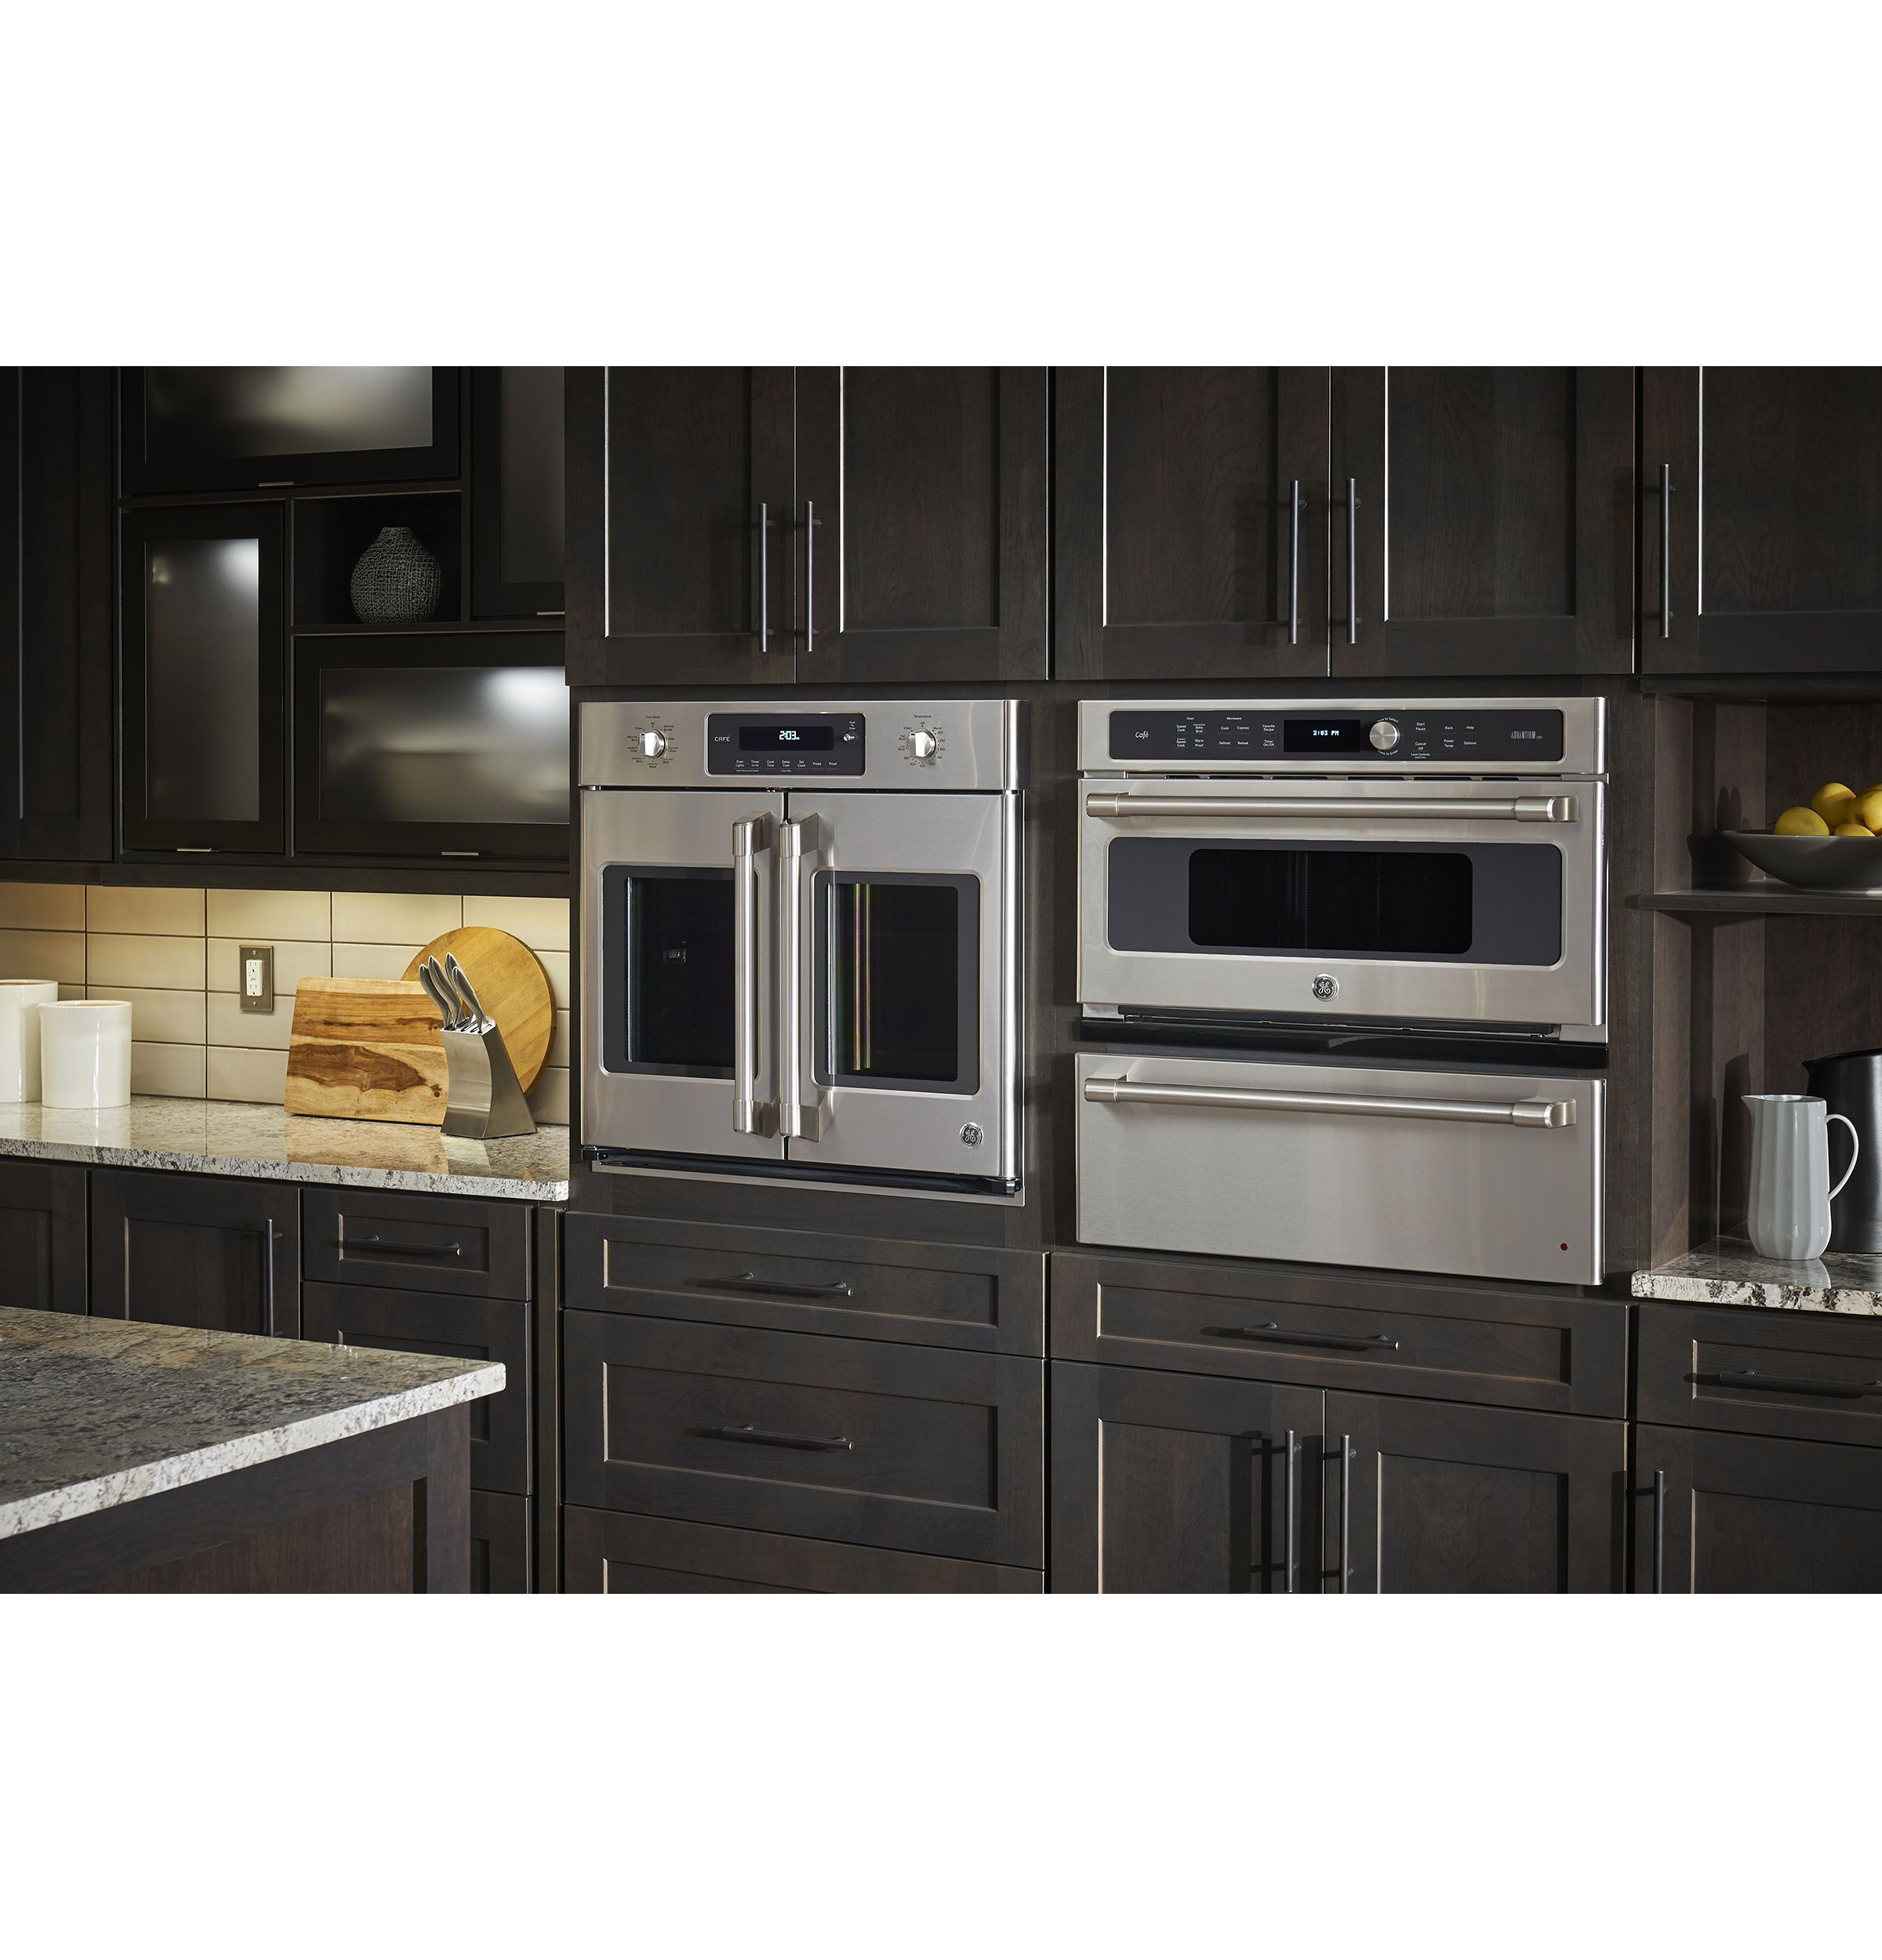 french door wall oven kitchen remodel